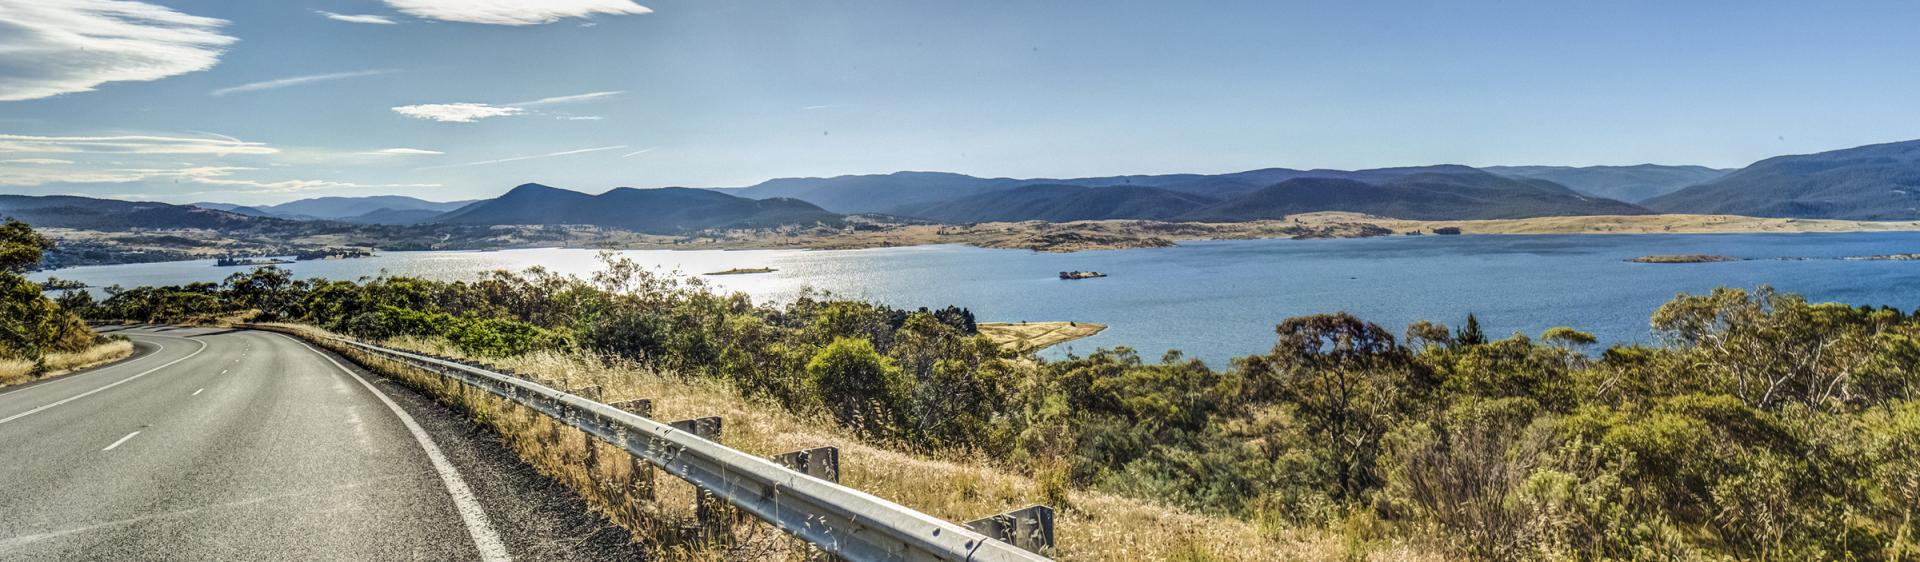 Lake Jindabyne, Kosciuszko National Park